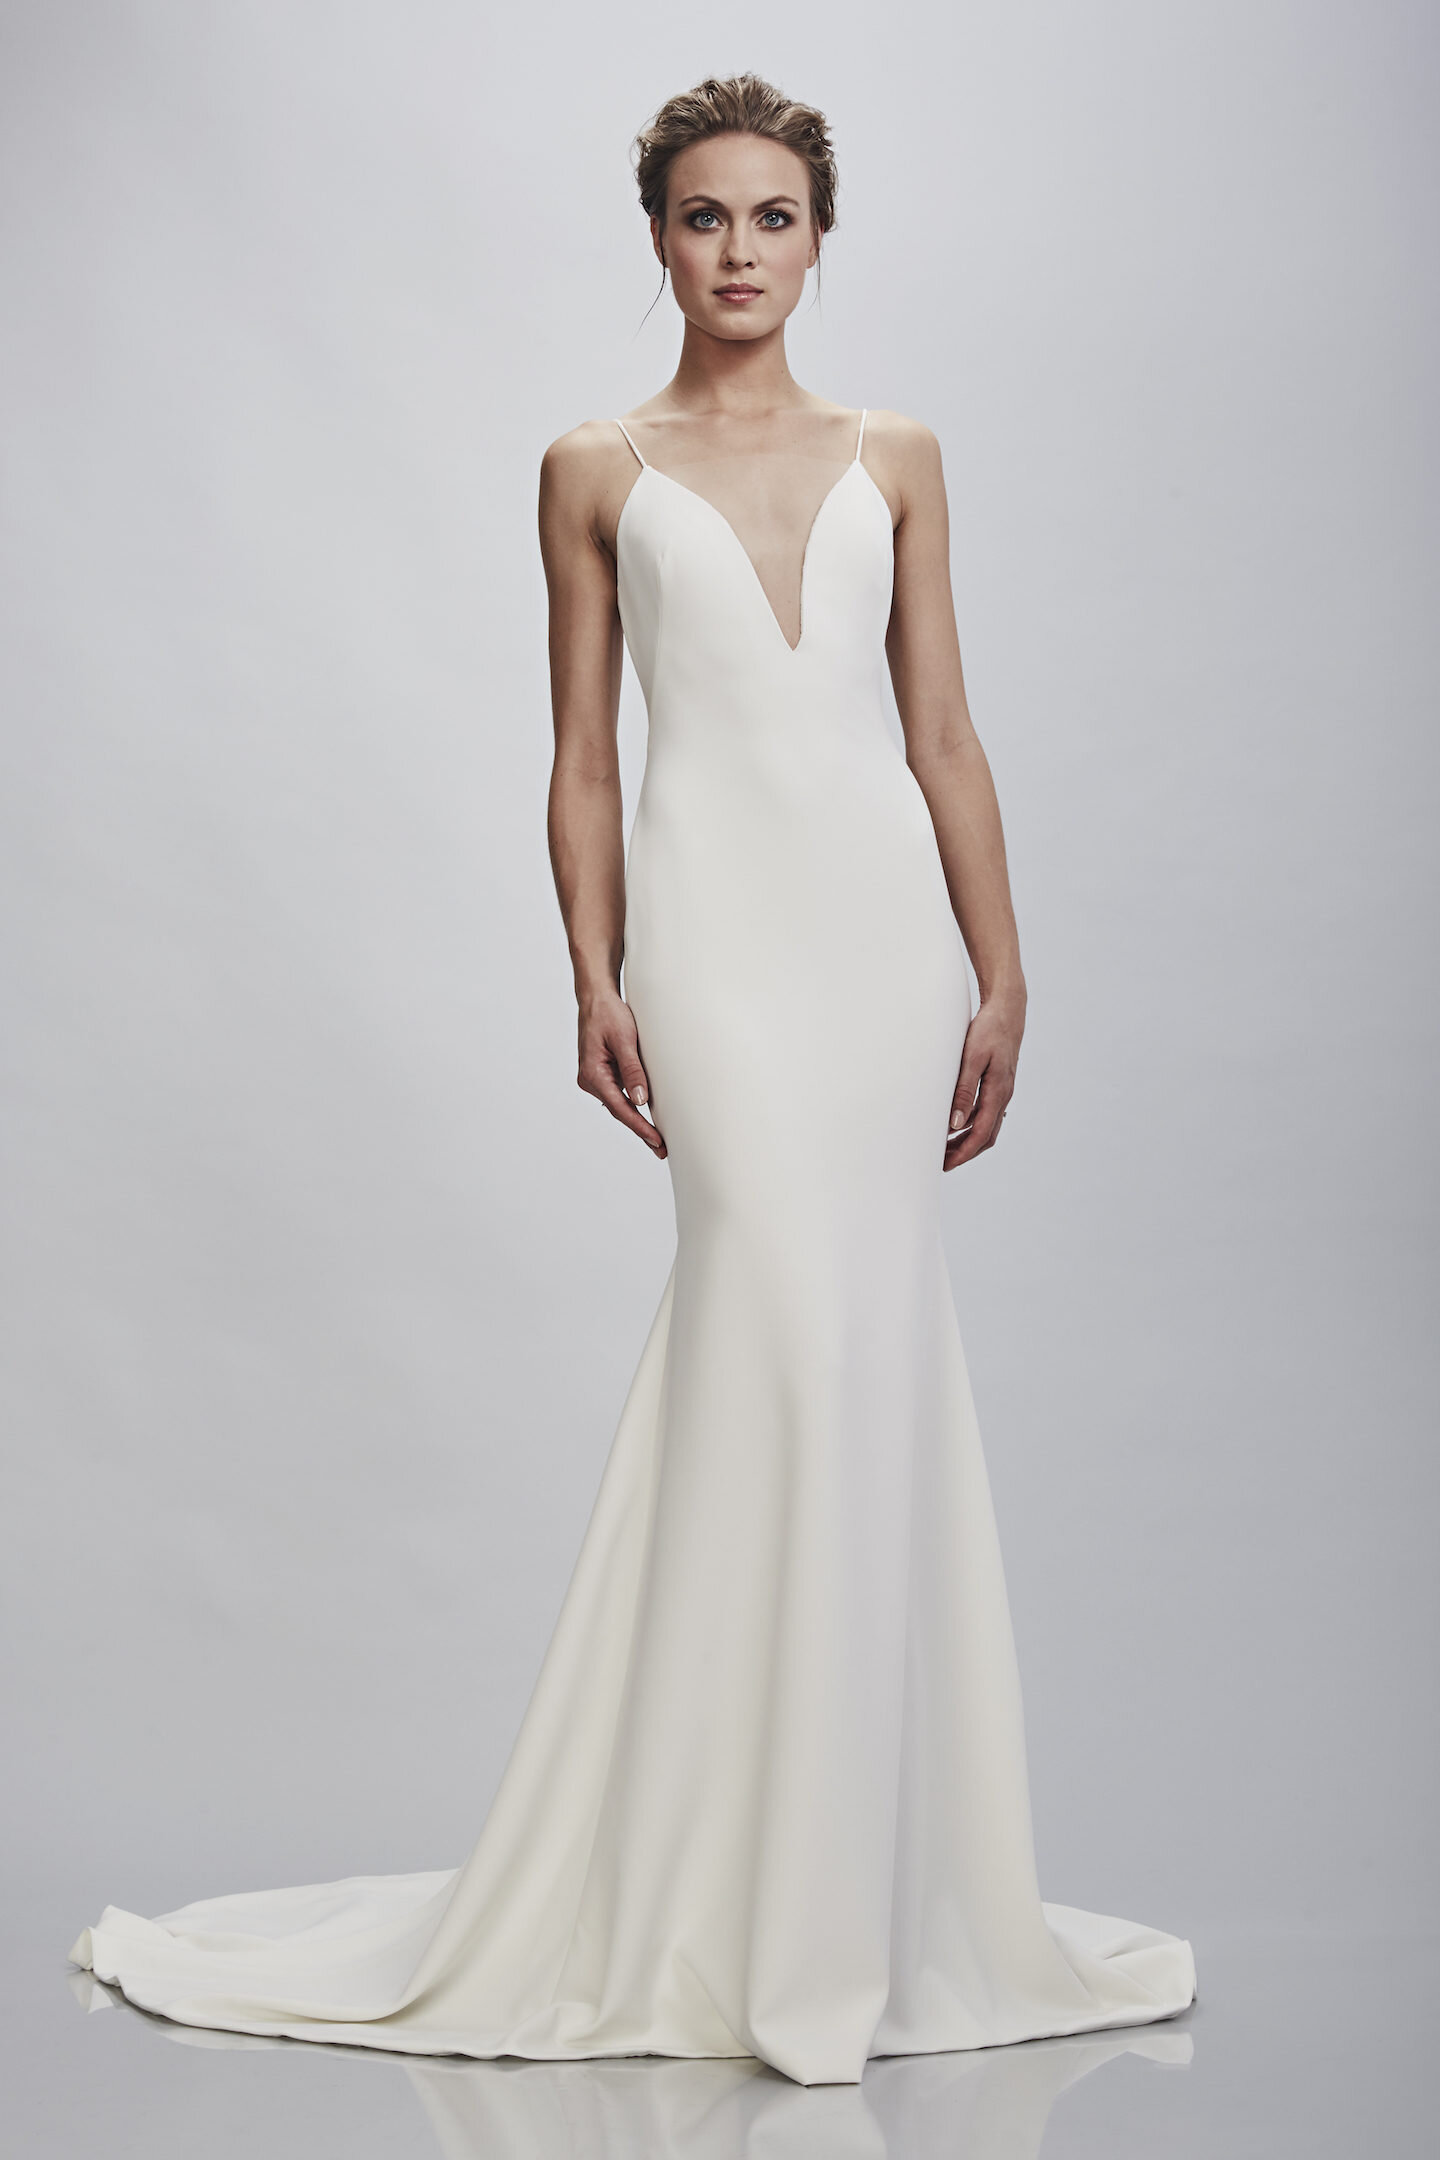 Theia - The Theia bride wants a gown that is unique, but yet still feels bridal. Known for their embellished couture beading and and attention to detail, each gown is meticulously constructed offering flattering fits and impeccable quality. Modern and elegant, these gowns are made to bring out your inner goddess. Collection begins at $1,295.